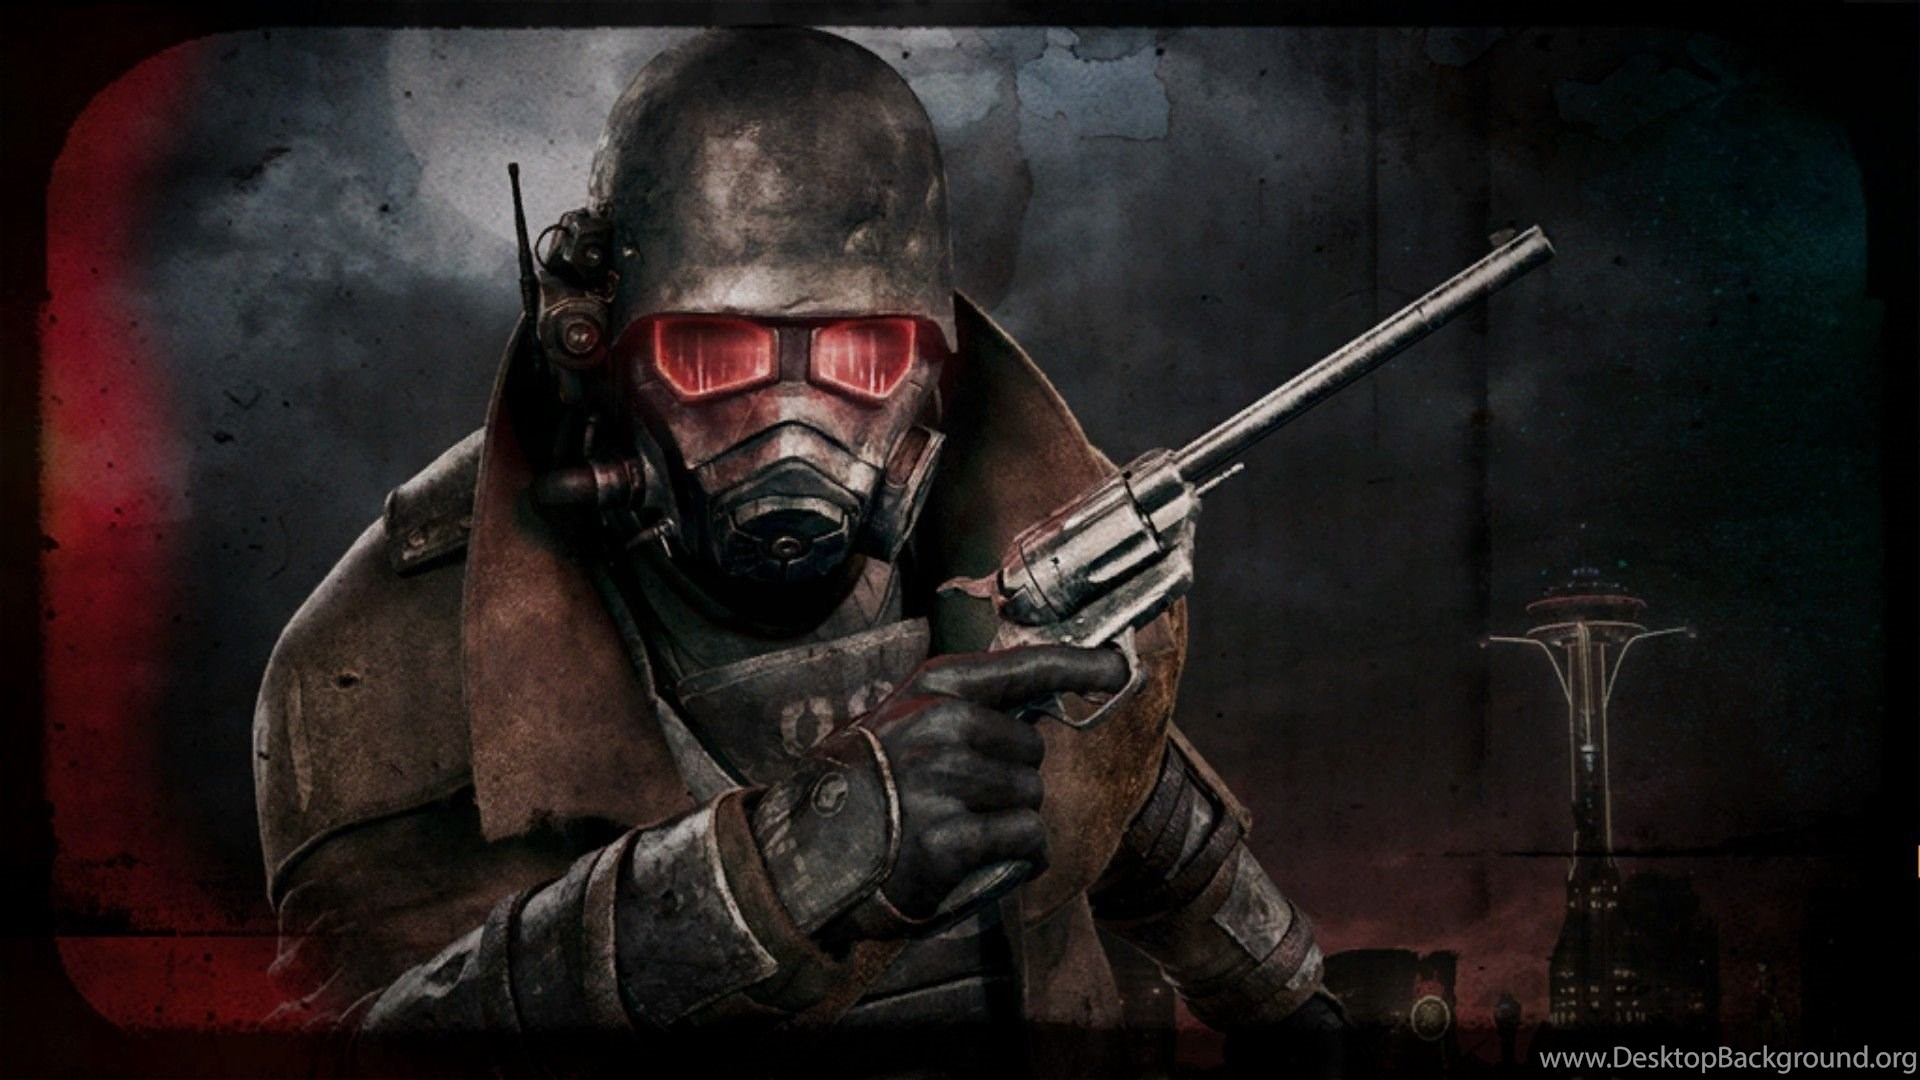 Fallout New Vegas Ranger Armor Wallpaper Desktop Background